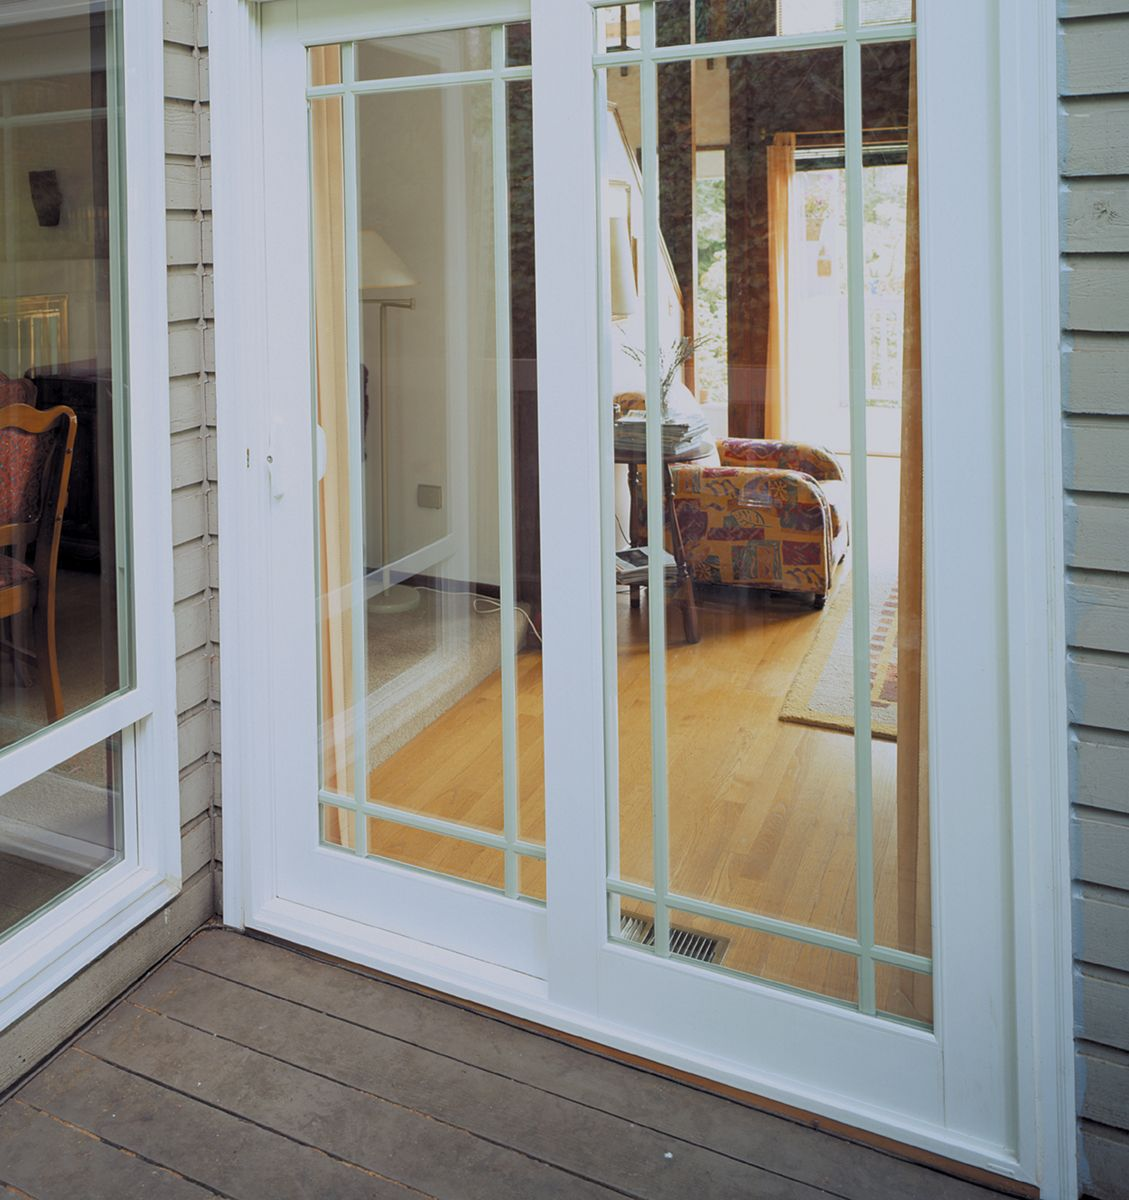 Patio Doors With Perimeter Grids